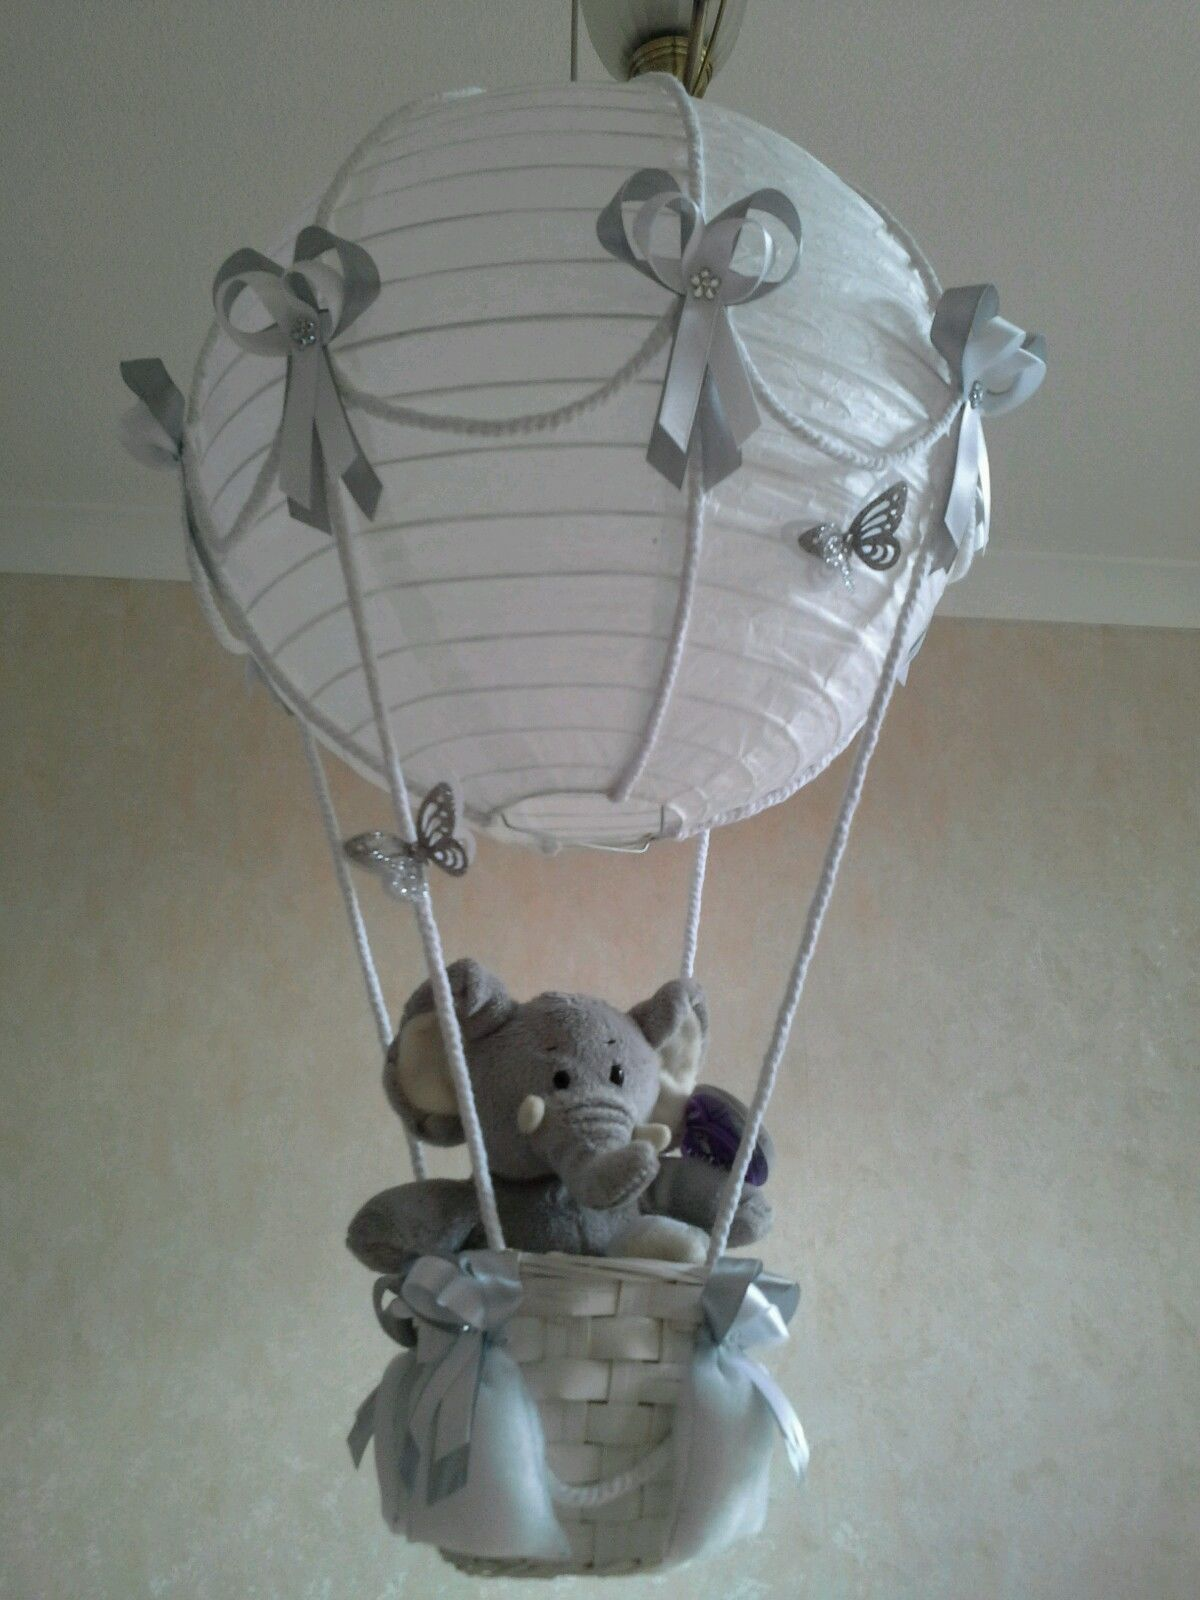 Light Bulb For Baby Room Cute Little Elephant In Hot Air Balloon Light Lamp Shade